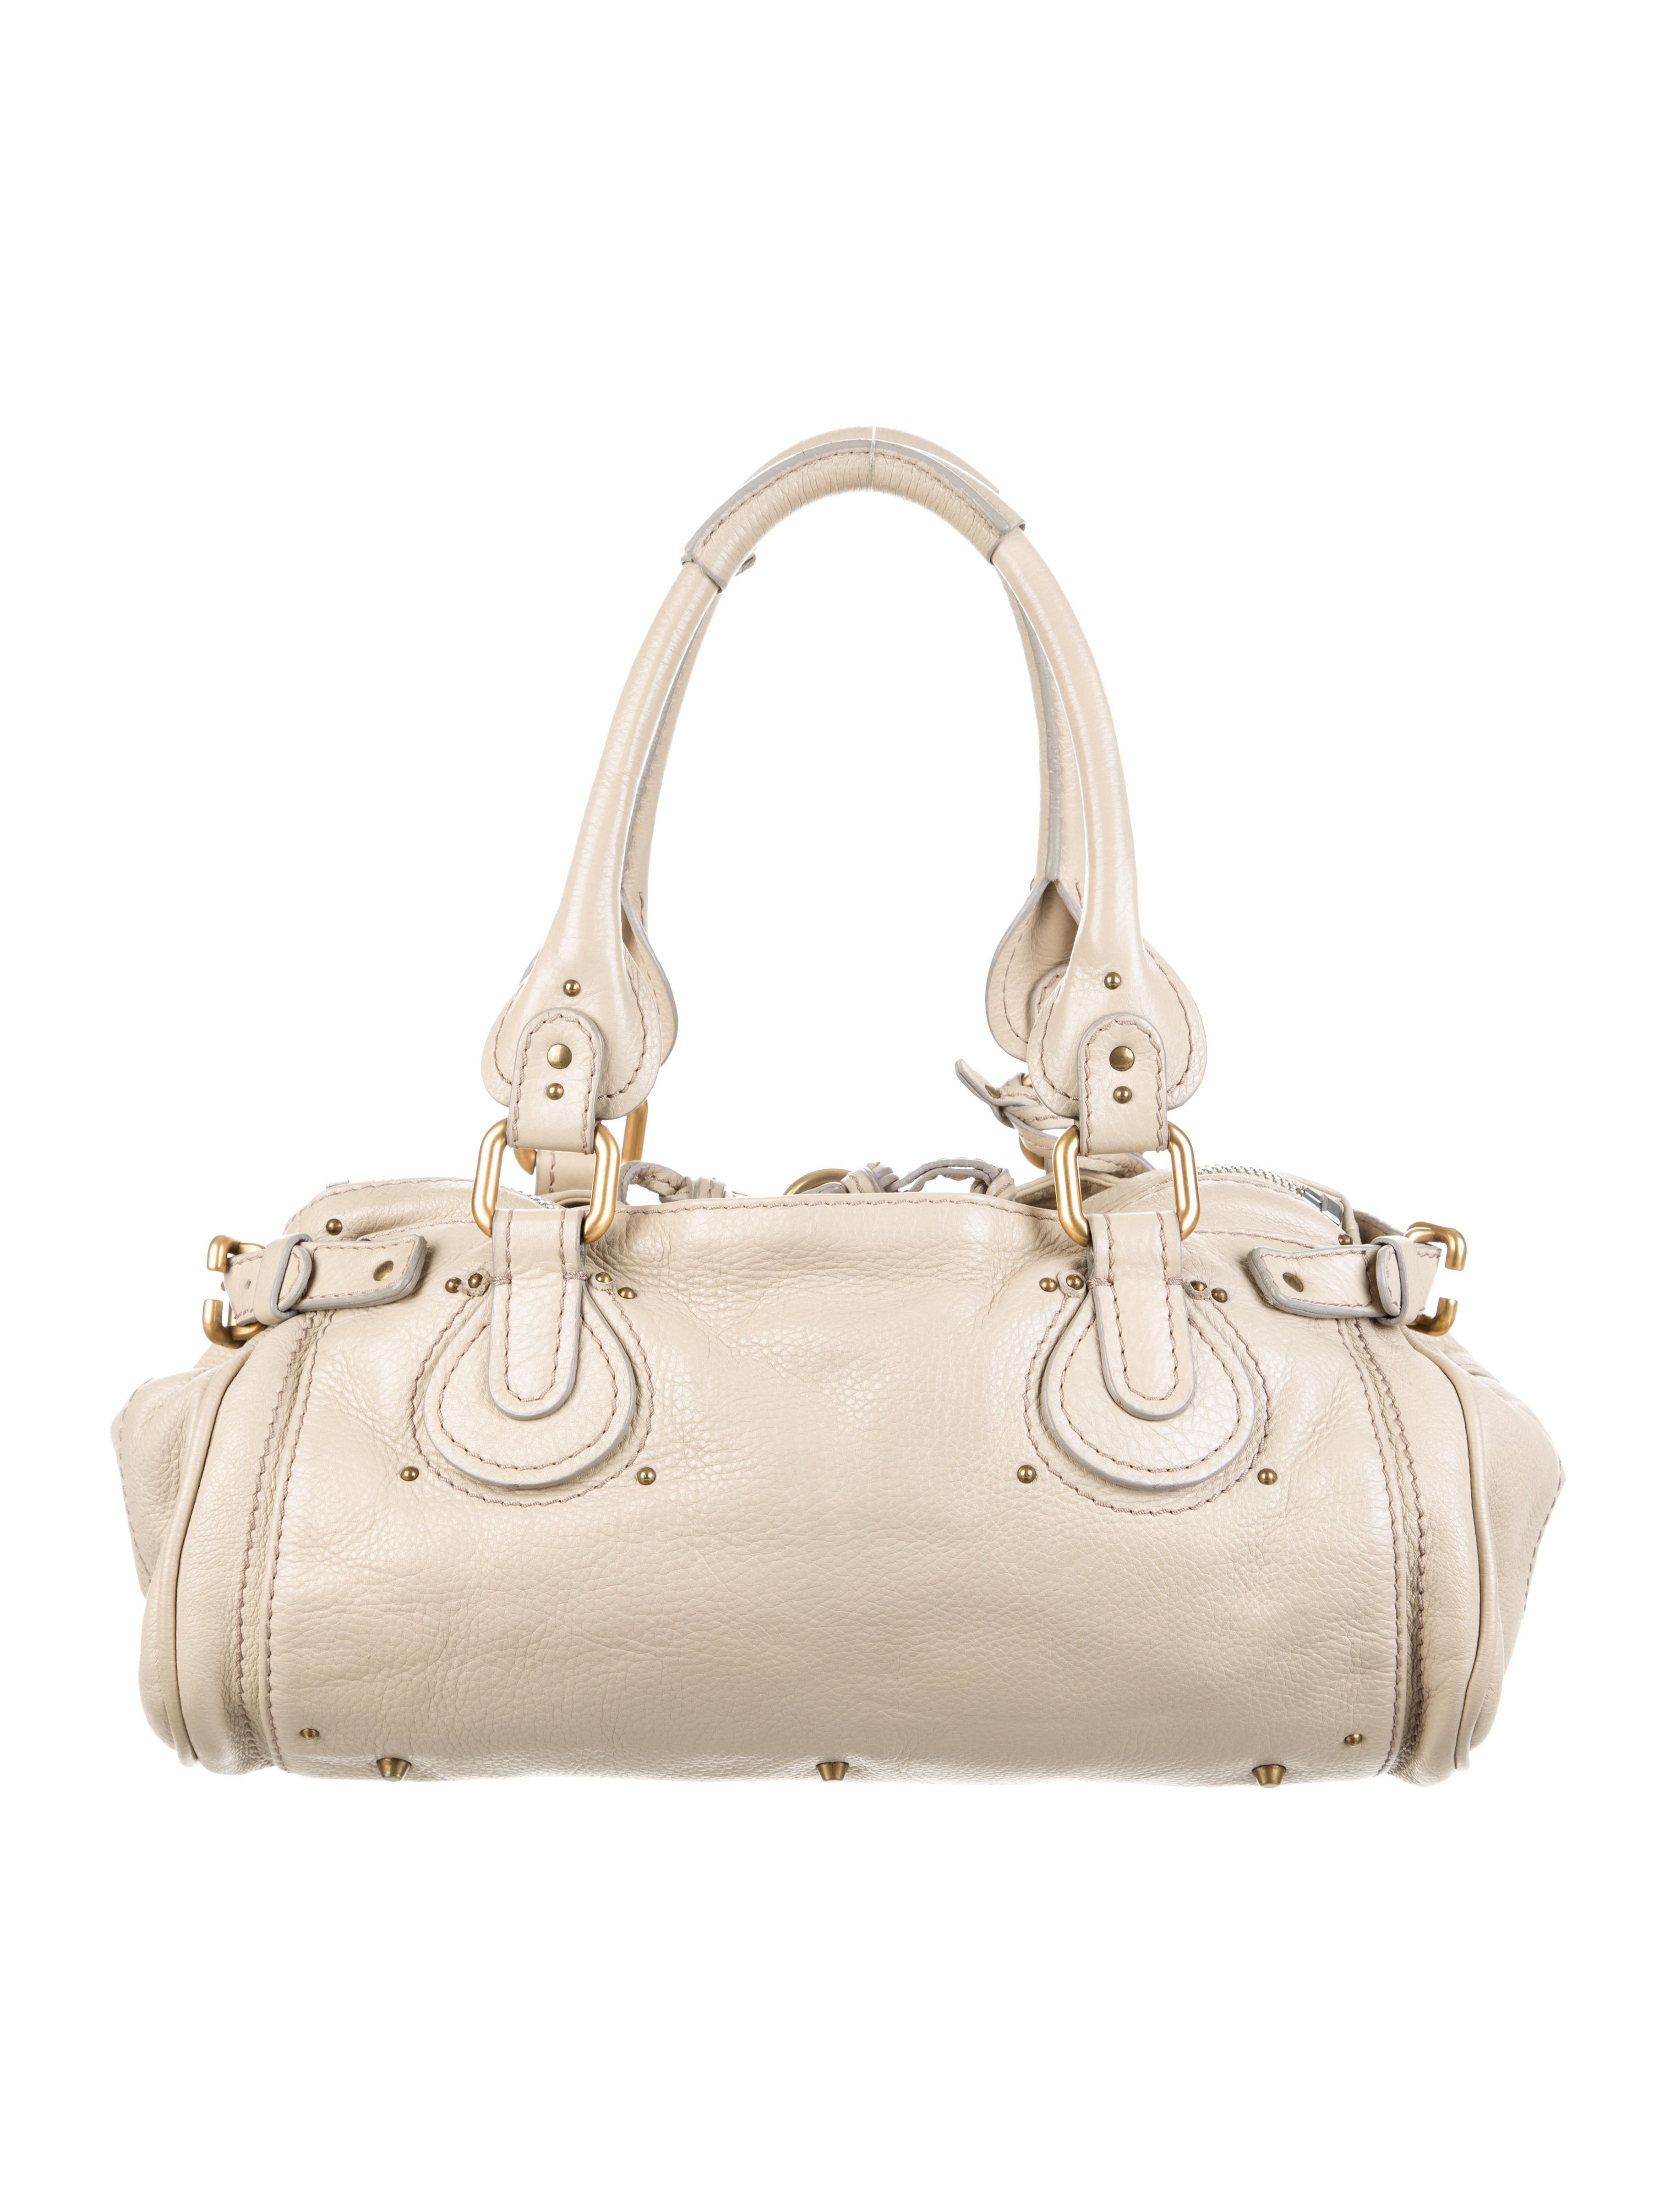 chloe knock off bags - chloe distressed paddington bag, see by chloe wallets